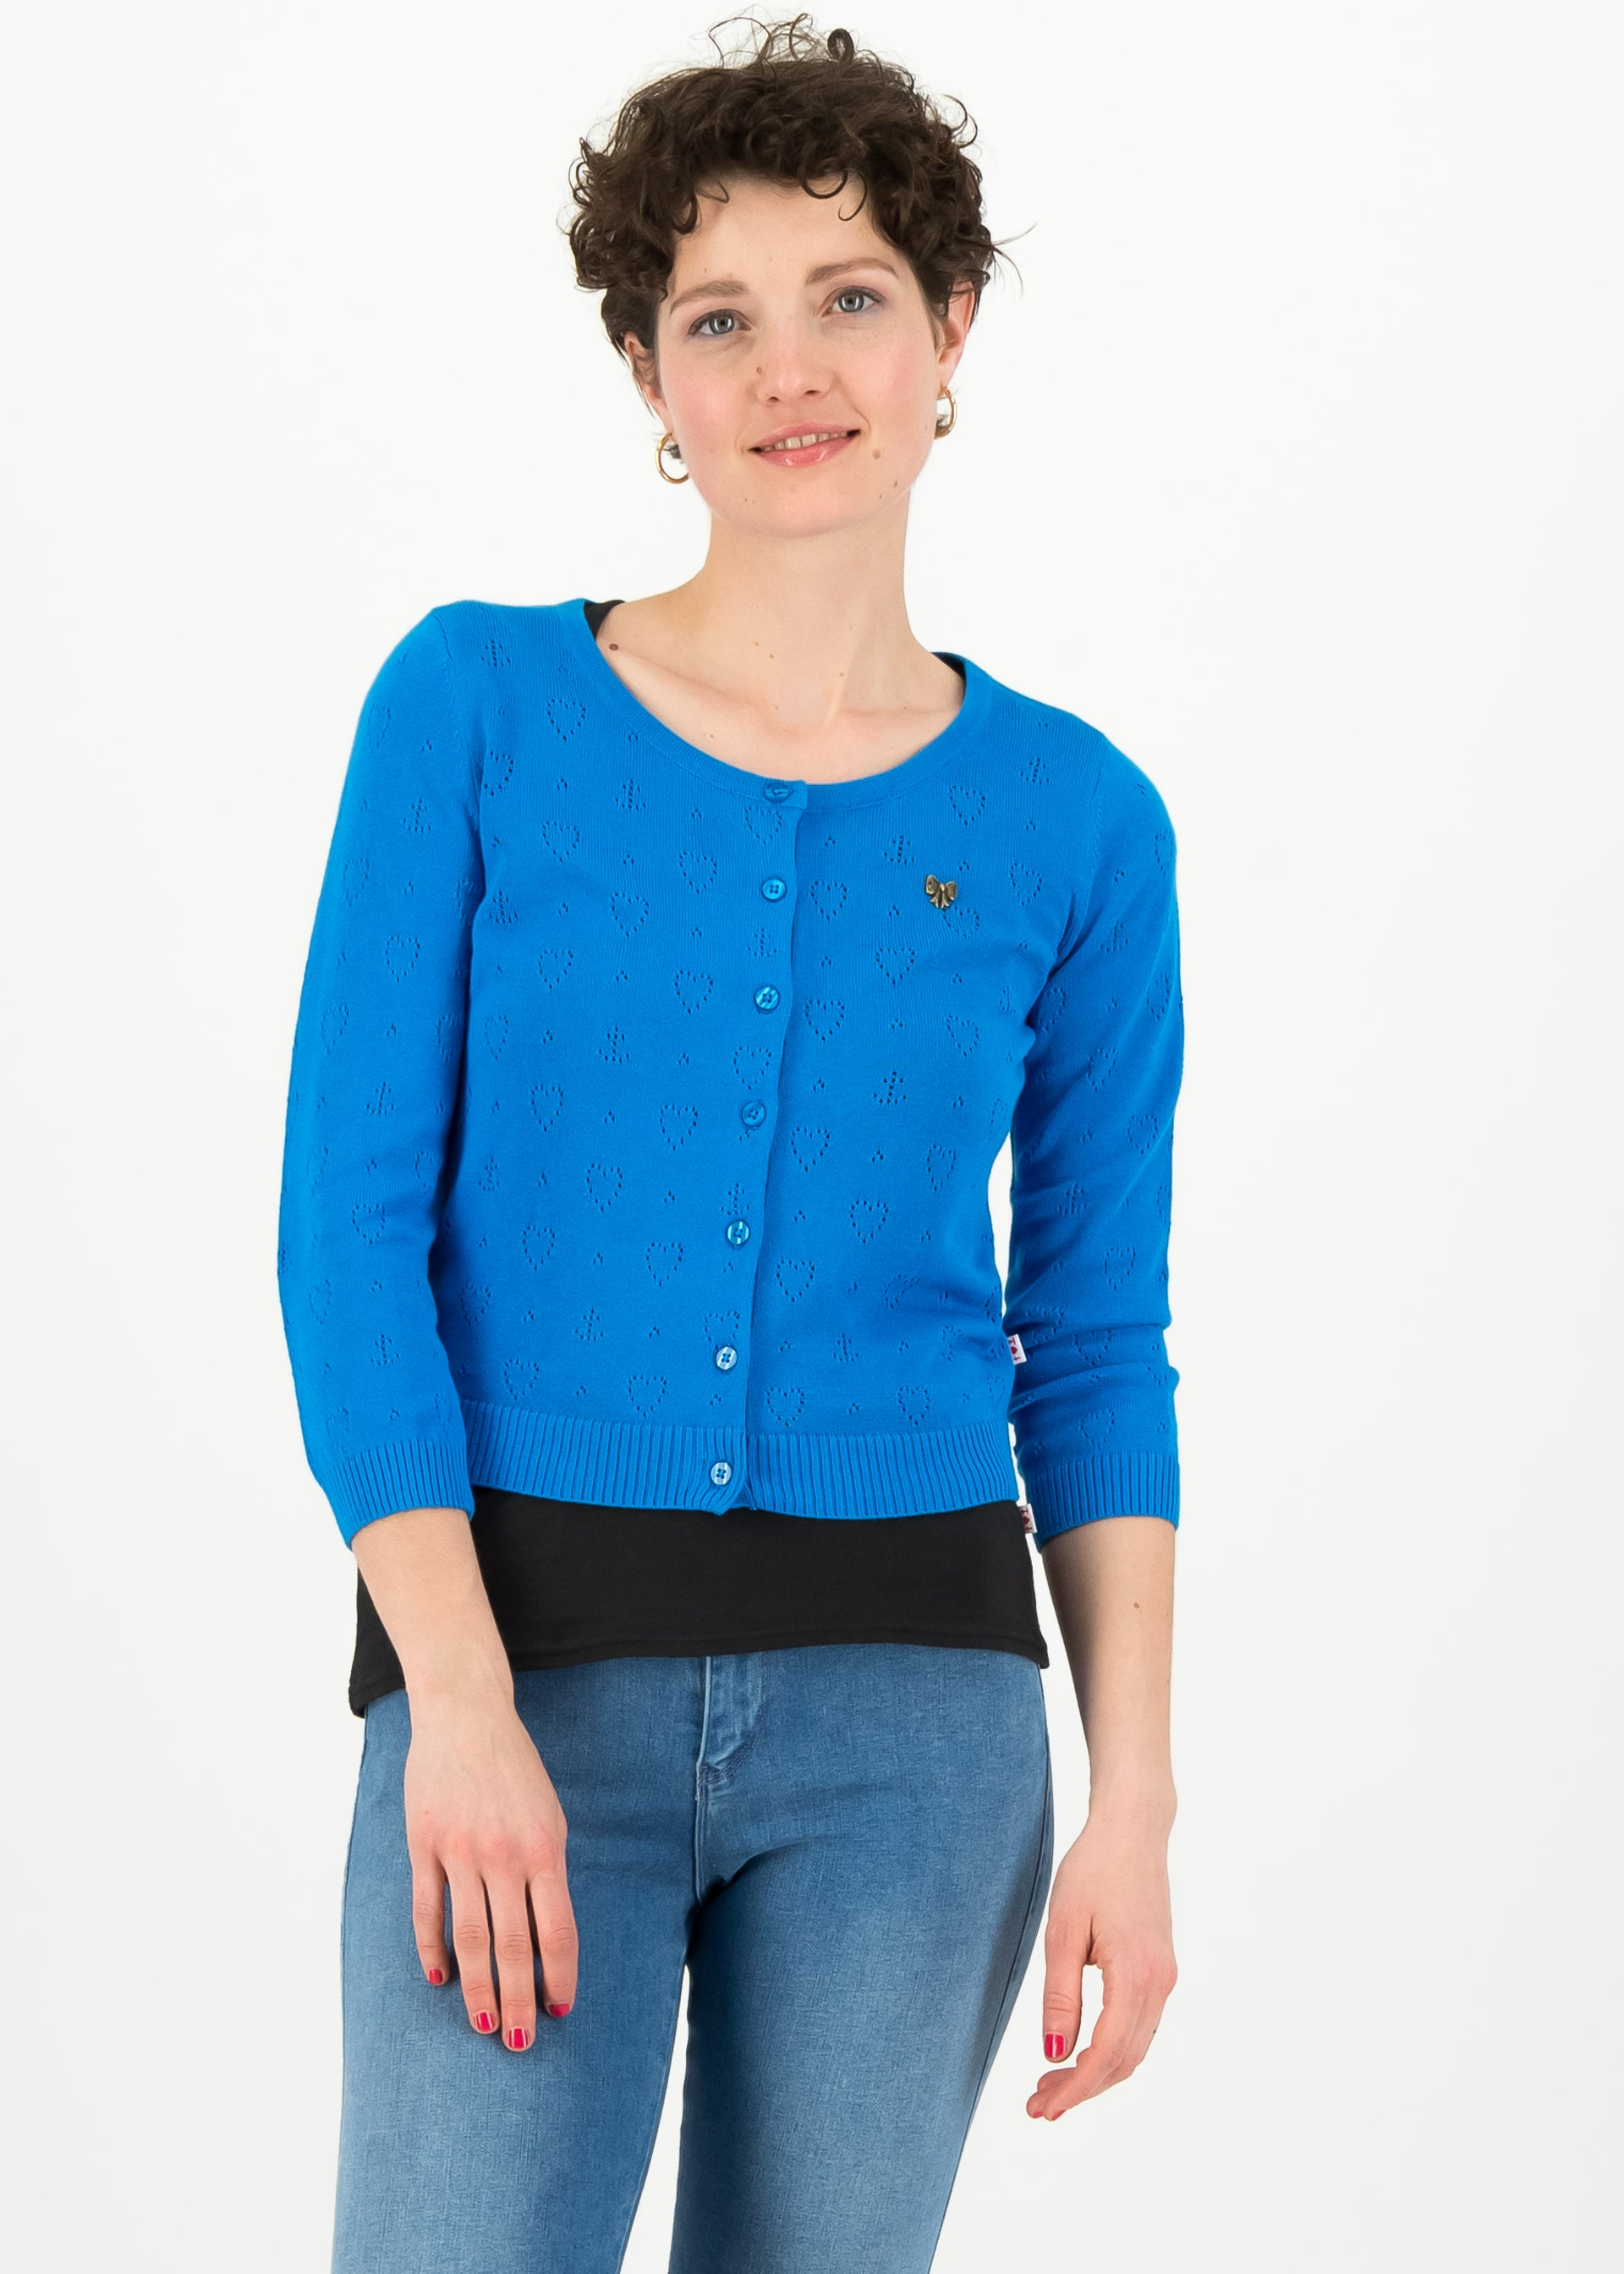 Damen Strickjacke blau